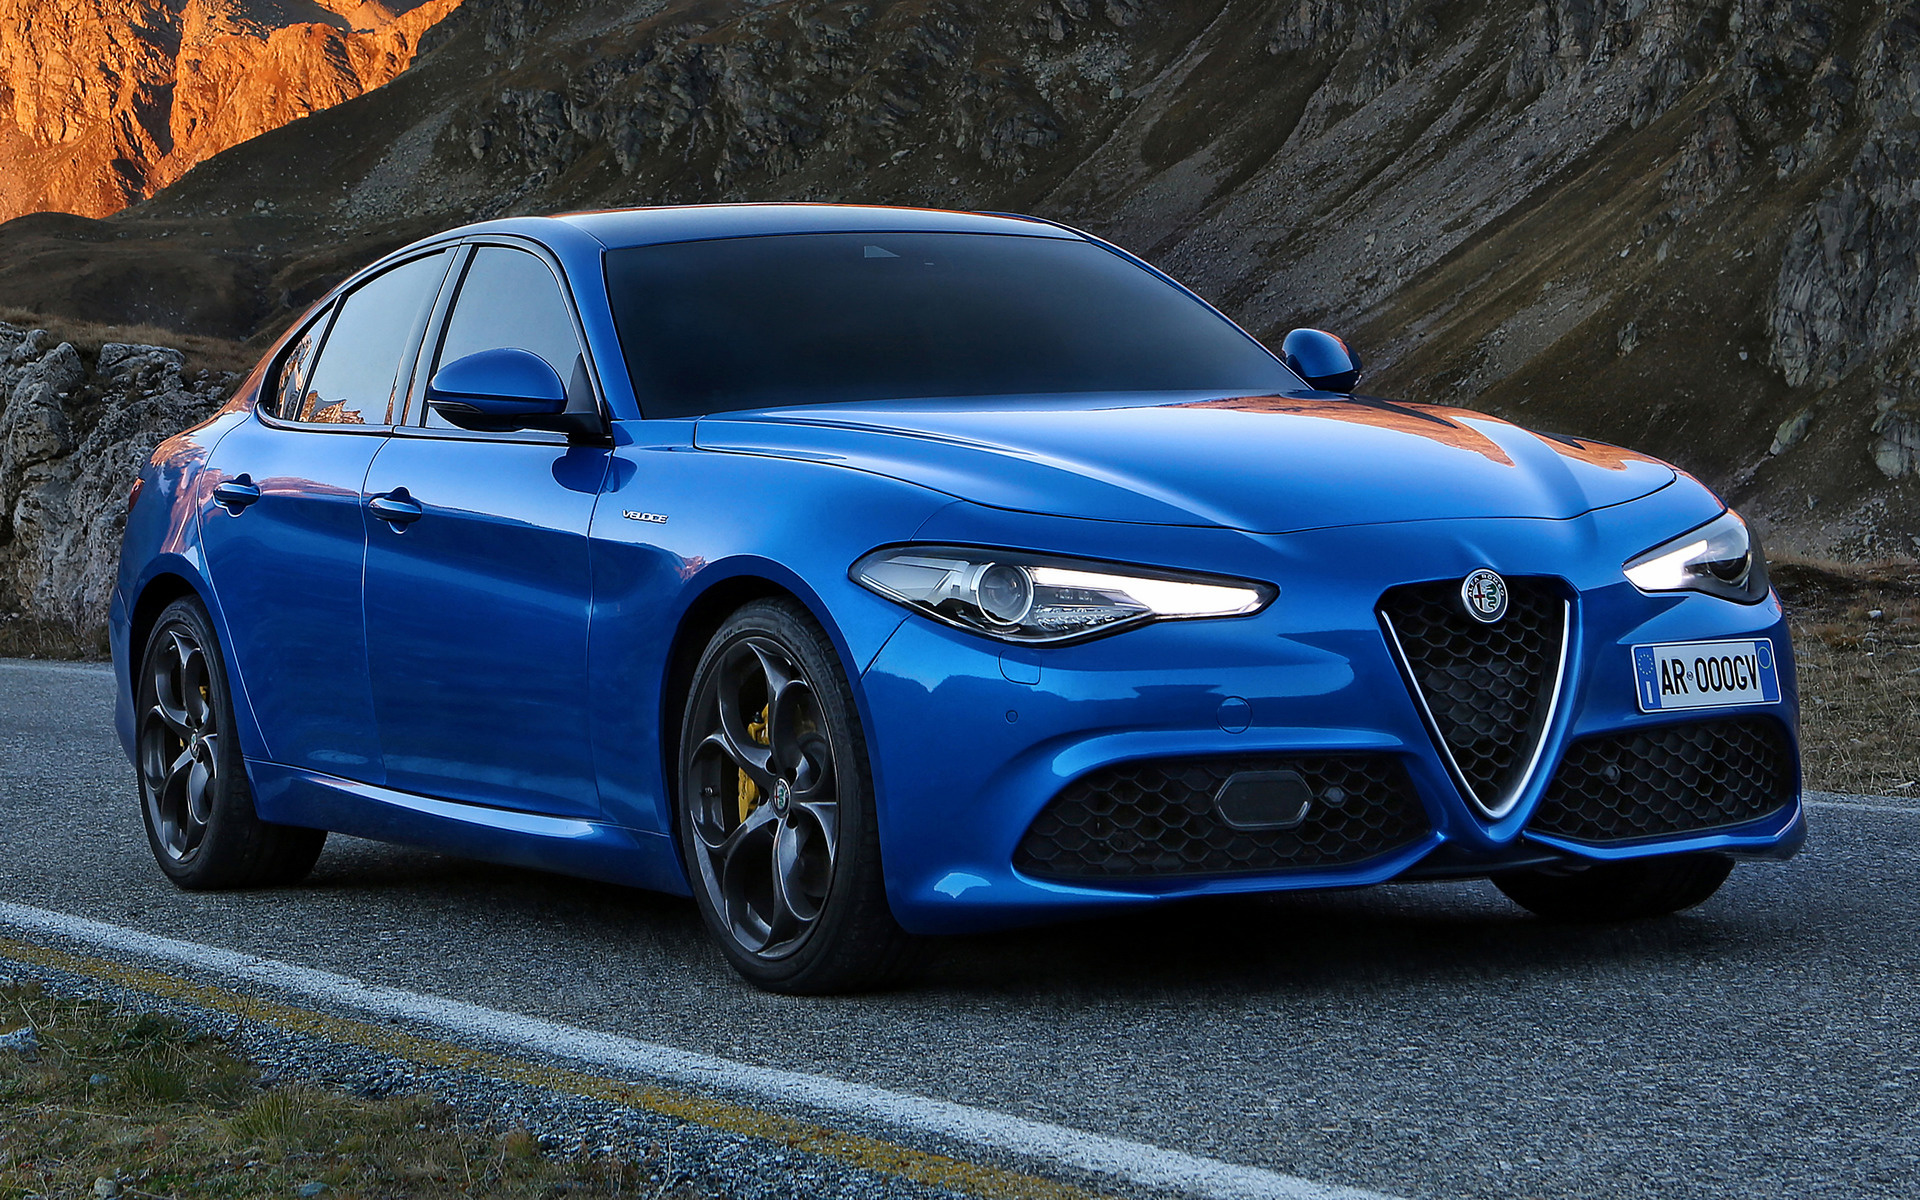 2016 Dodge Ram >> 2016 Alfa Romeo Giulia Veloce - Wallpapers and HD Images | Car Pixel